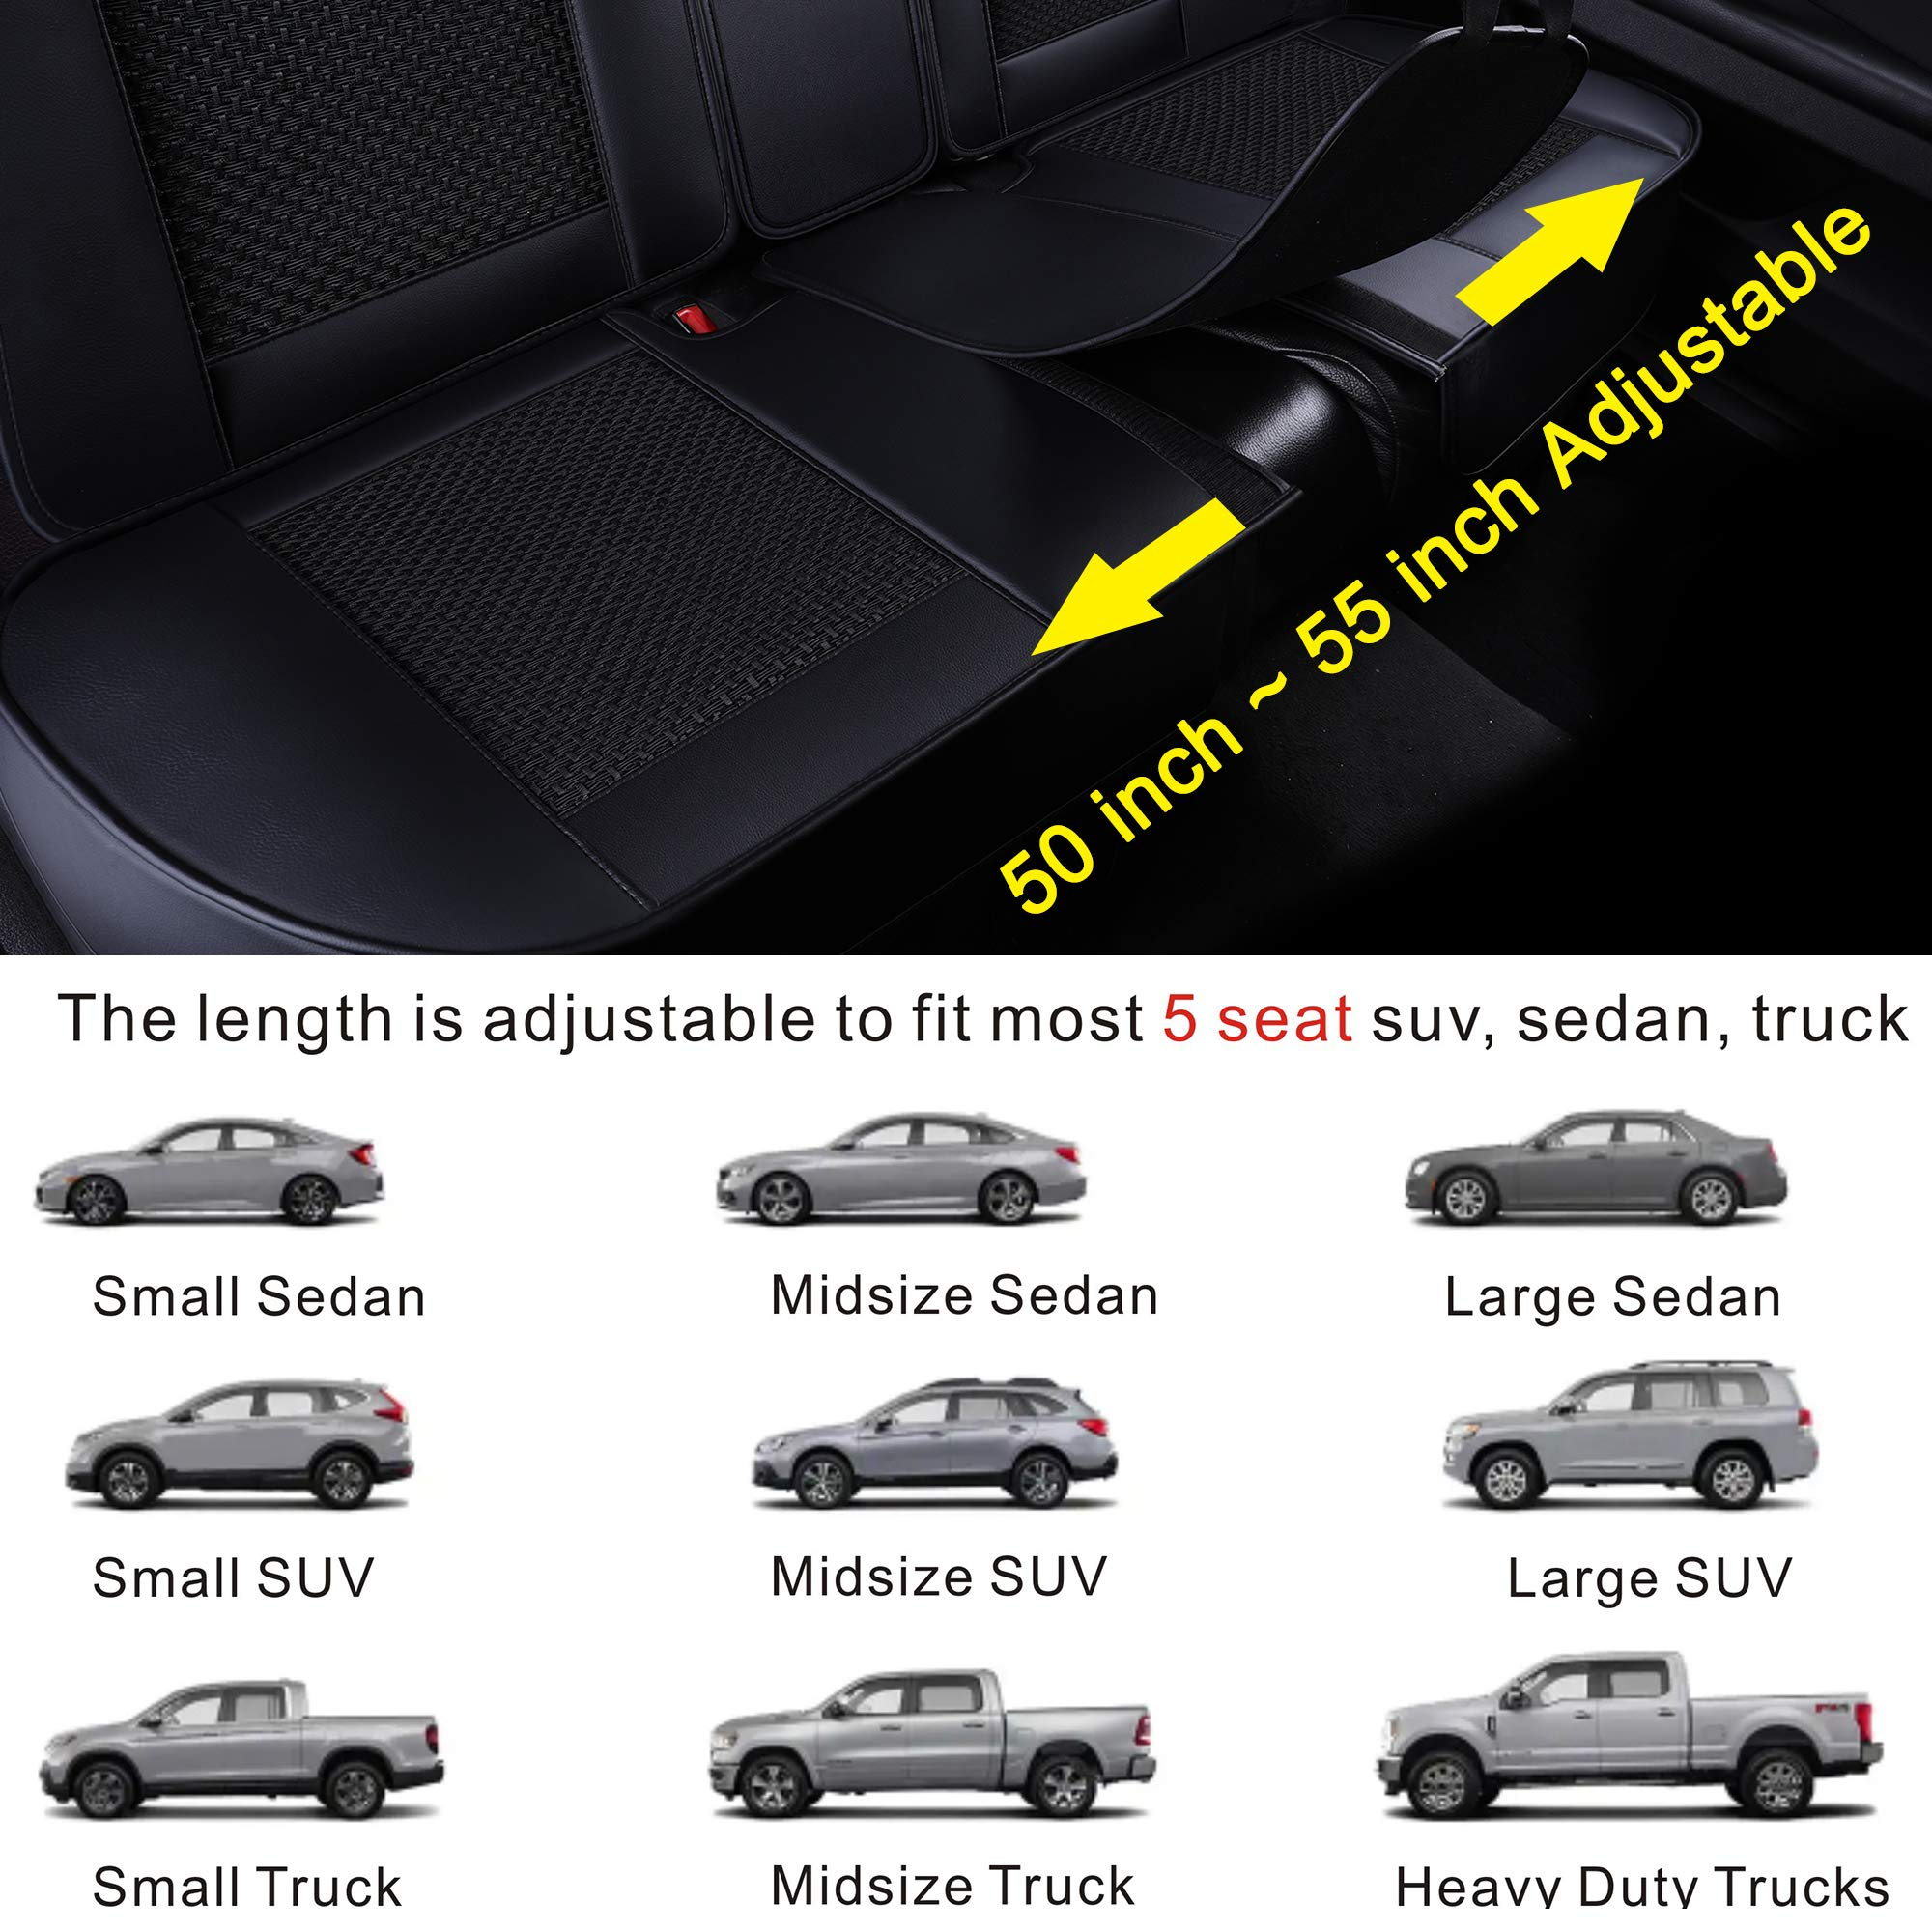 LUCKYMAN CLUB Breathable 5 Car Seat Covers Fit for Most SUV Sedan Truck Nicely Fit for 2018 Chevy Equinox Cruze 2019 Toyota Tacoma TRD PRO Double Cab RAV4 Corolla Camry (Black Full Set) by LUCKYMAN CLUB (Image #6)